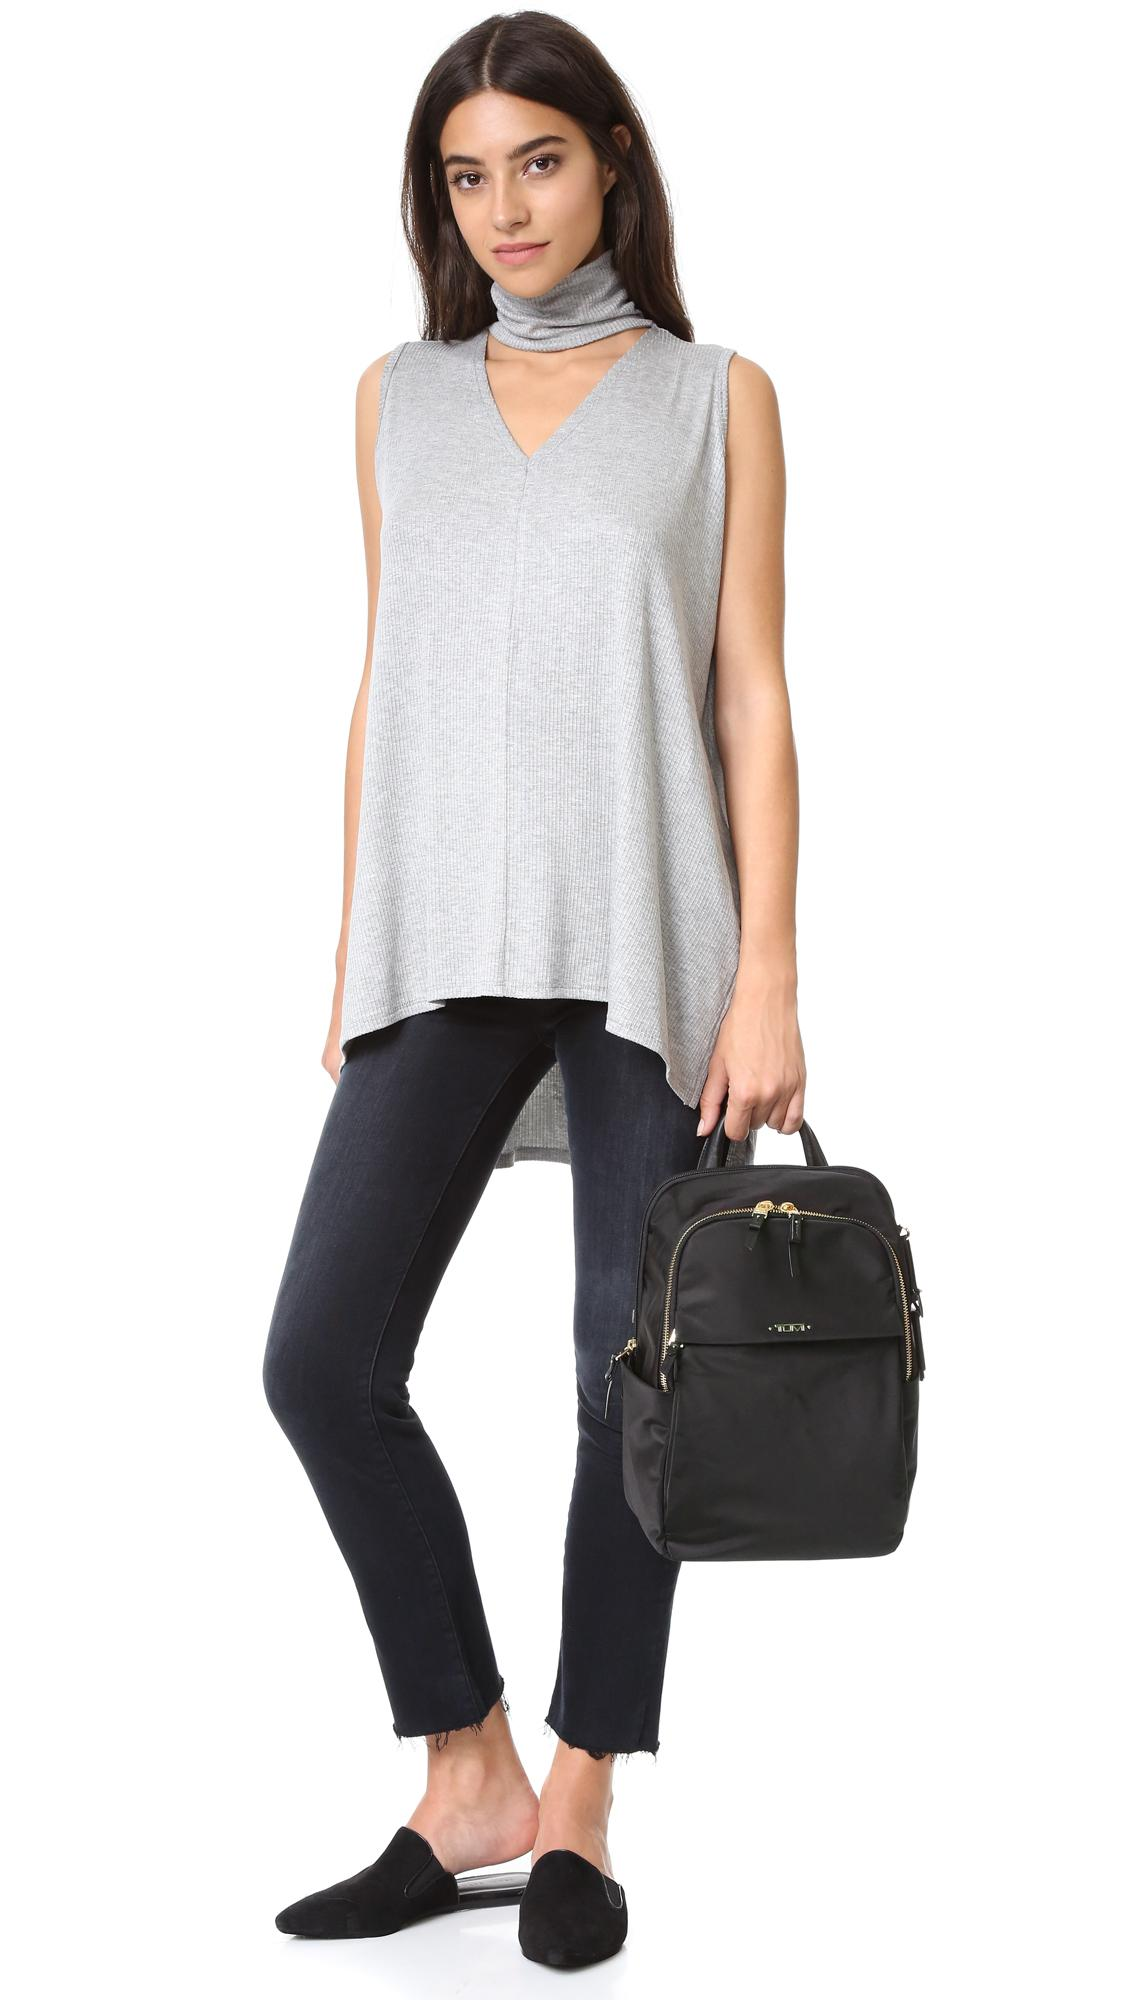 Tumi Daniella Small Backpack in Black - Lyst b34da4719f